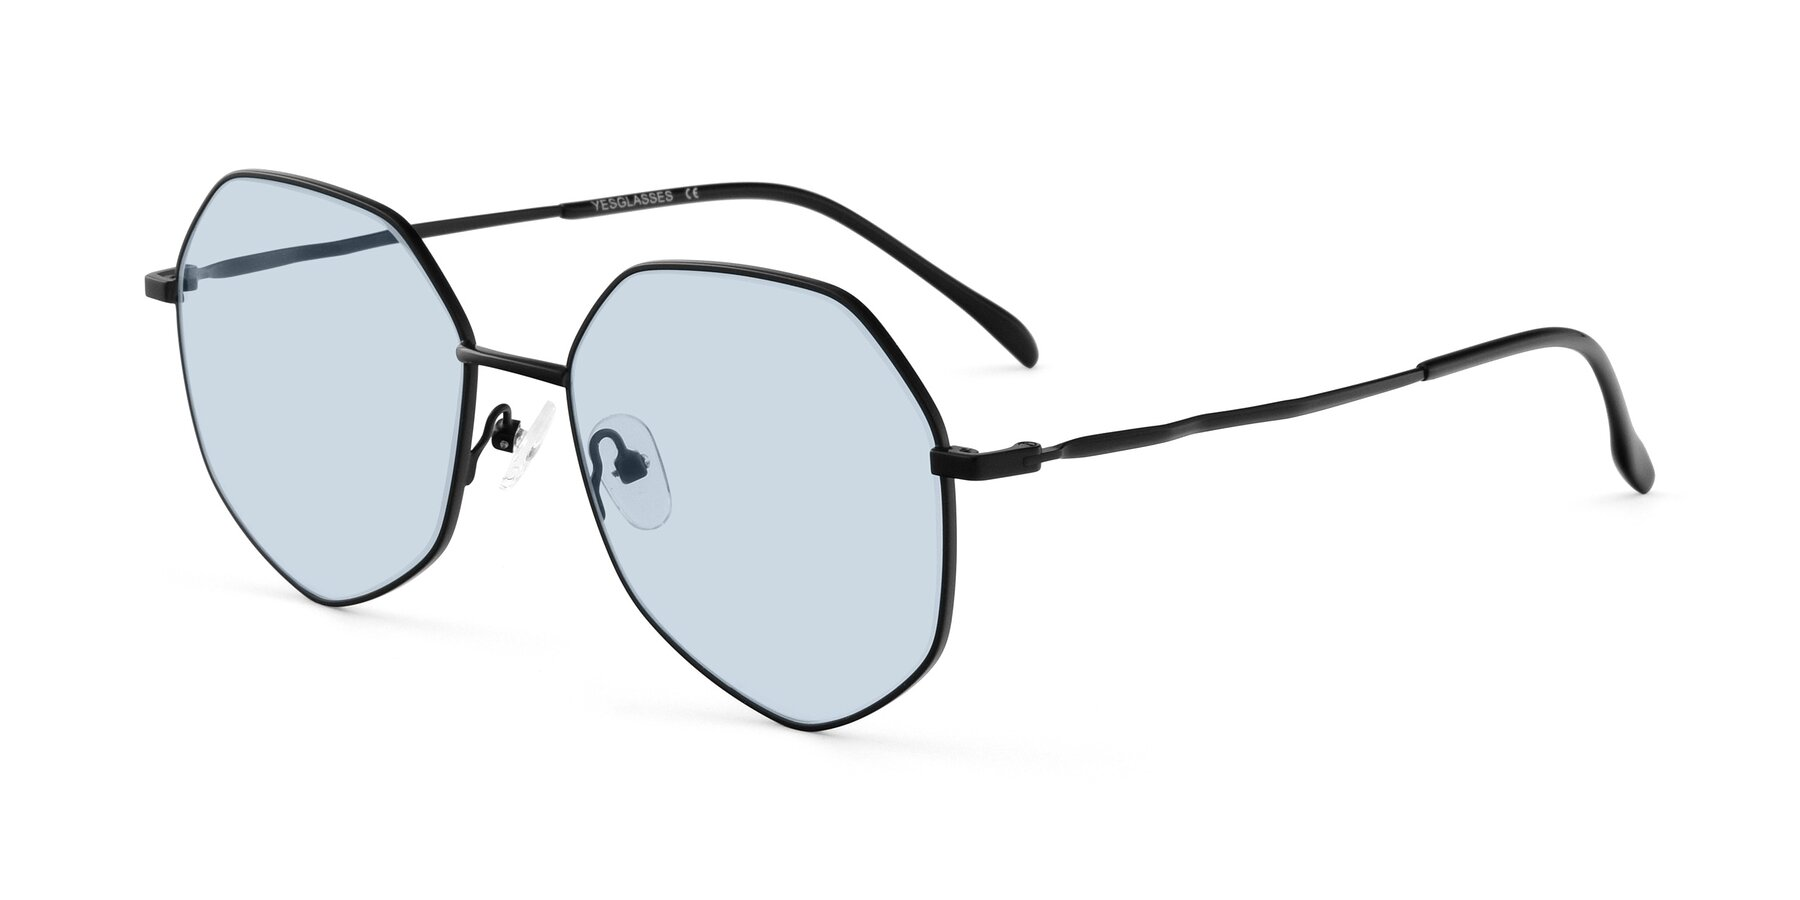 Angle of Sunshine in Black with Light Blue Tinted Lenses